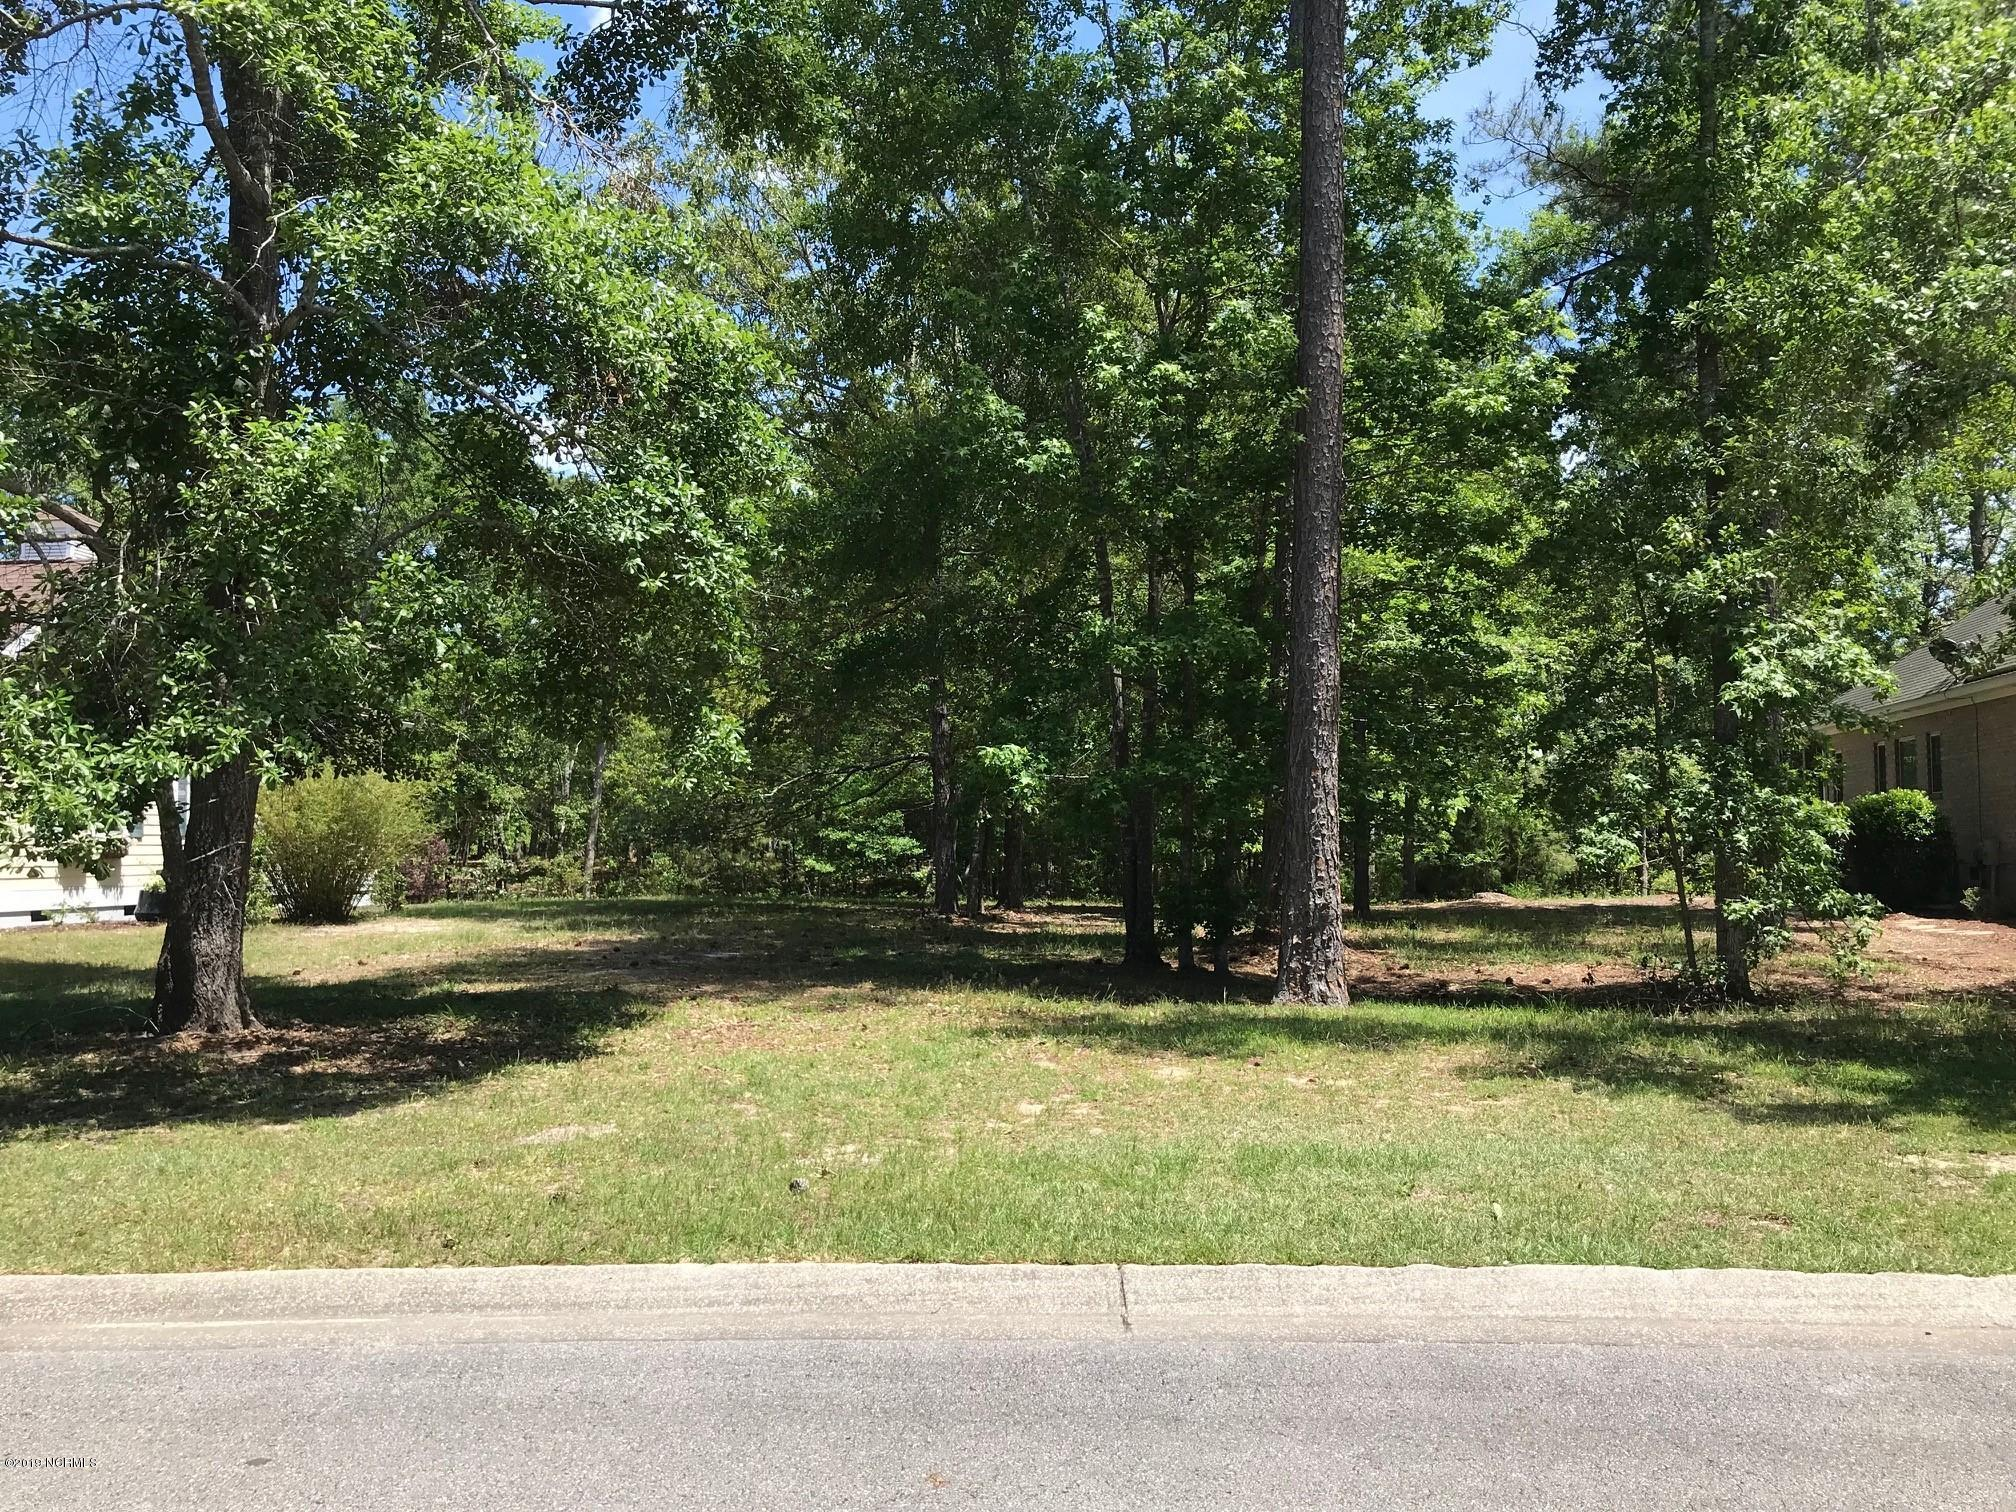 469 Autumn Chase, Bolivia, North Carolina 28422, ,Residential land,For sale,Autumn Chase,100148832